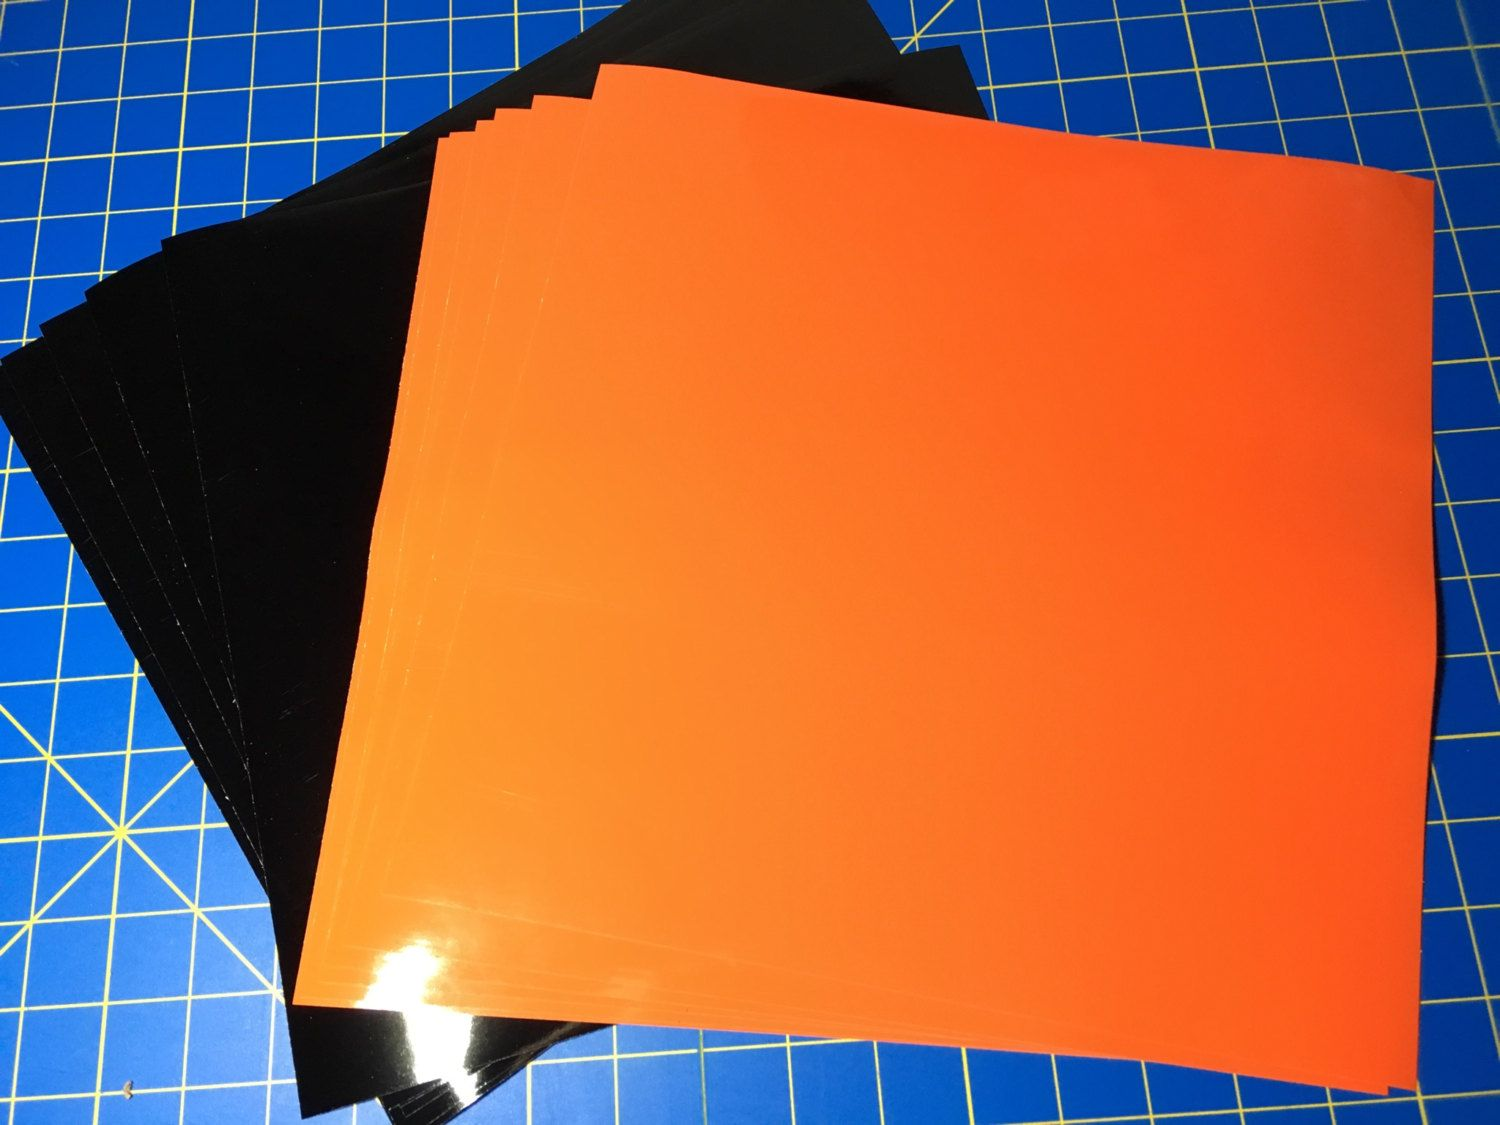 Oracal 651 Adhesive Vinyl Cricut 12 12x12 Sheets Permanent Halloween Special 6 Gloss Black 6 Sheets Orange By Craftvinylsho Orange Sheets Adhesive Vinyl Etsy